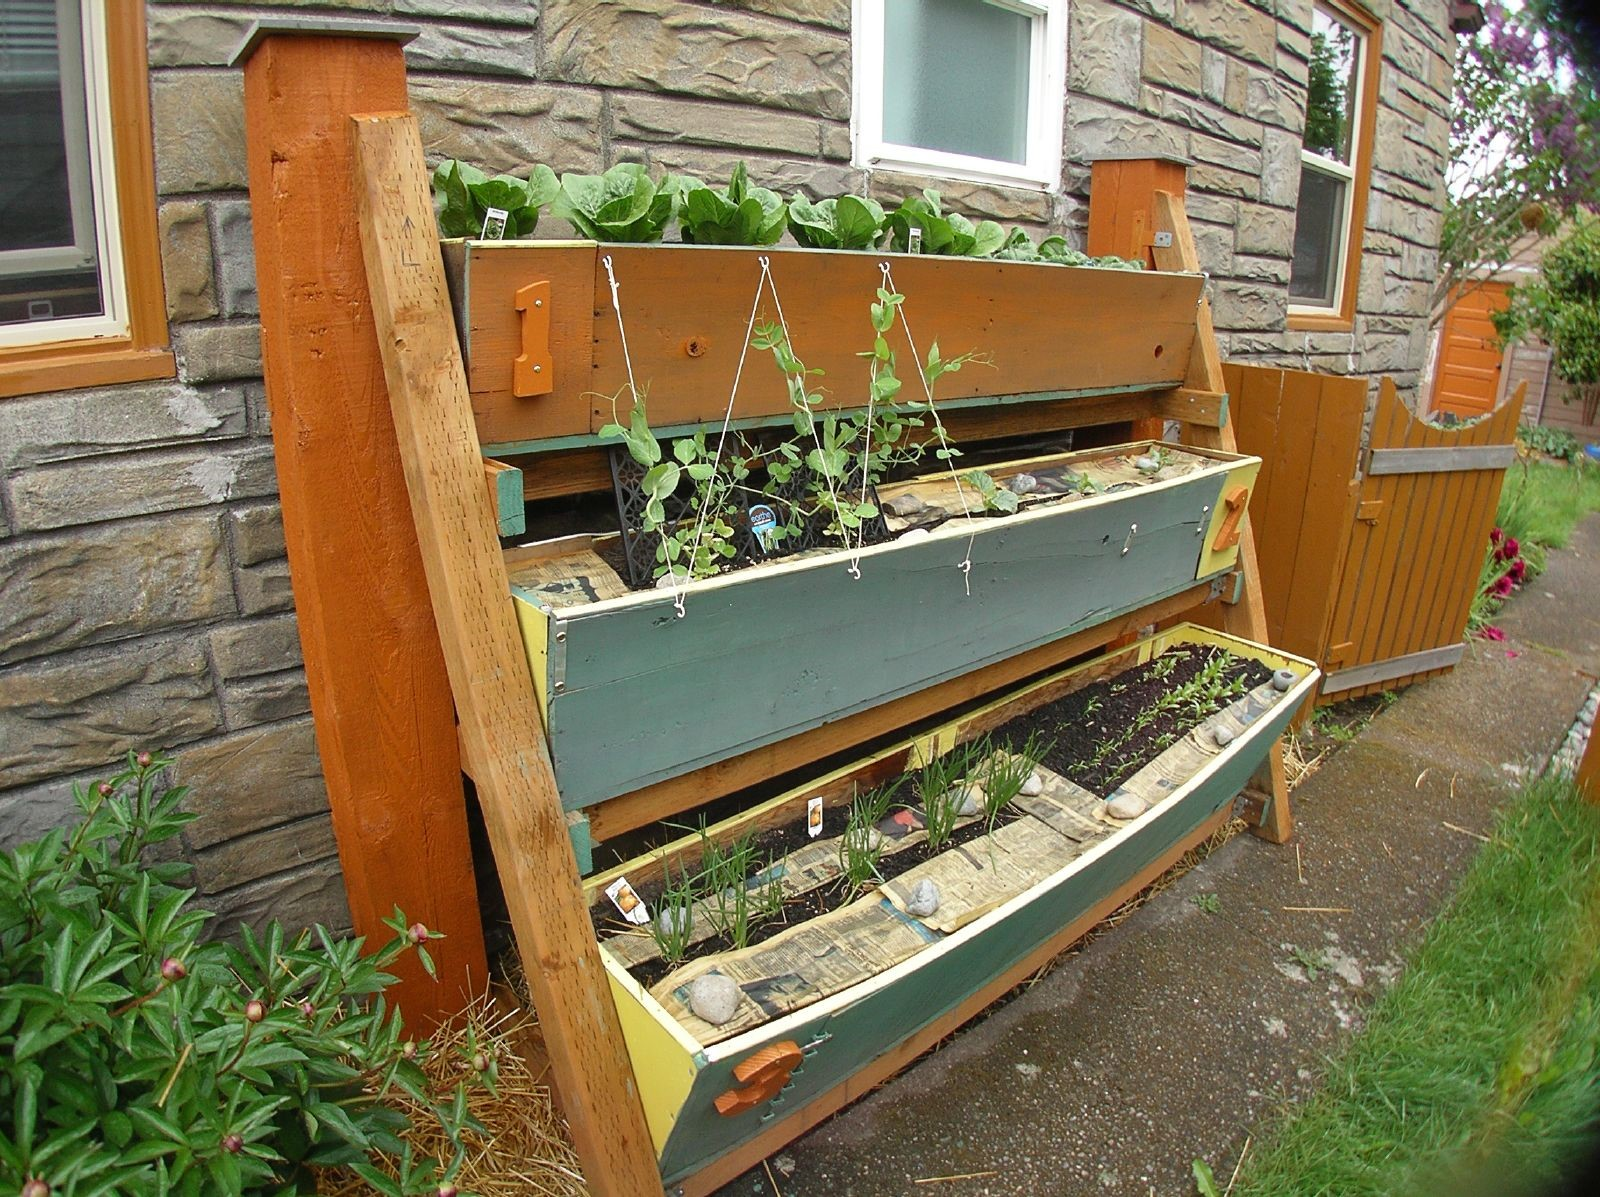 Small space gardening 20 clever ideas to grow in a limited space the self sufficient living - Small space garden design property ...